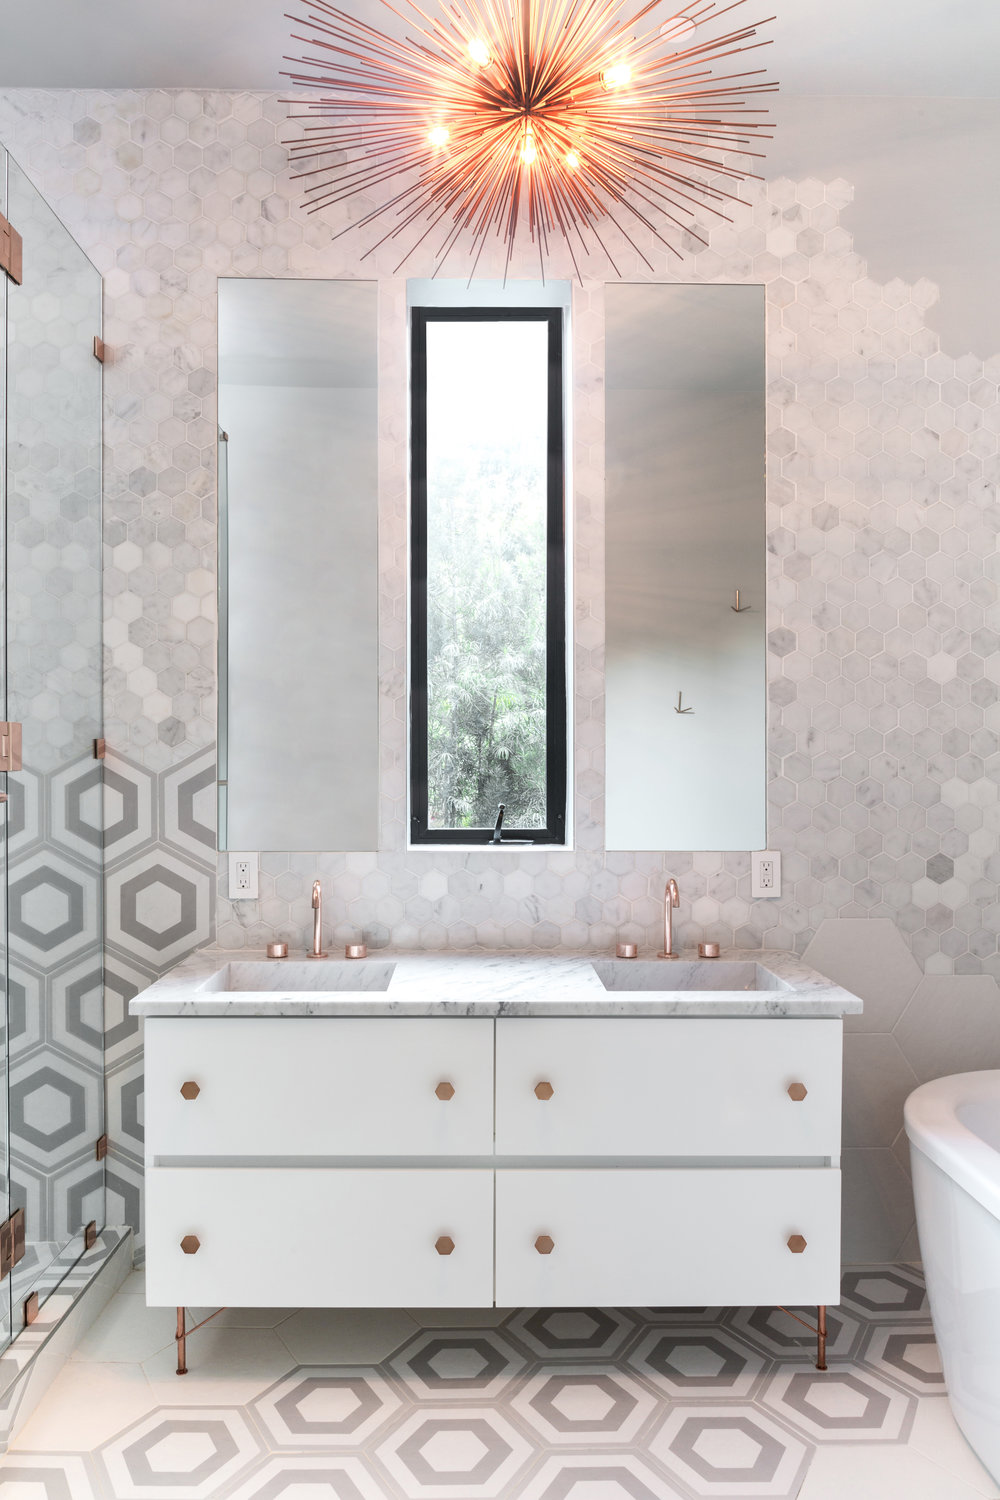 Middle Bathroom - ∙unique tile +Masonry∙bespoke Copper Hardware∙Maximal minimalismSituated between Bedrooms Two and Three, this regal bathroom features Brodware minimalist copper faucetsimported from Australia, polished copper hardware,flawlessly carved marble trough sinks, whimsically unique hexagonal tile work, and a made-to-order urchin chandelier. Luxuriating in this airy bathroom is sure to make anyone feel like a star.